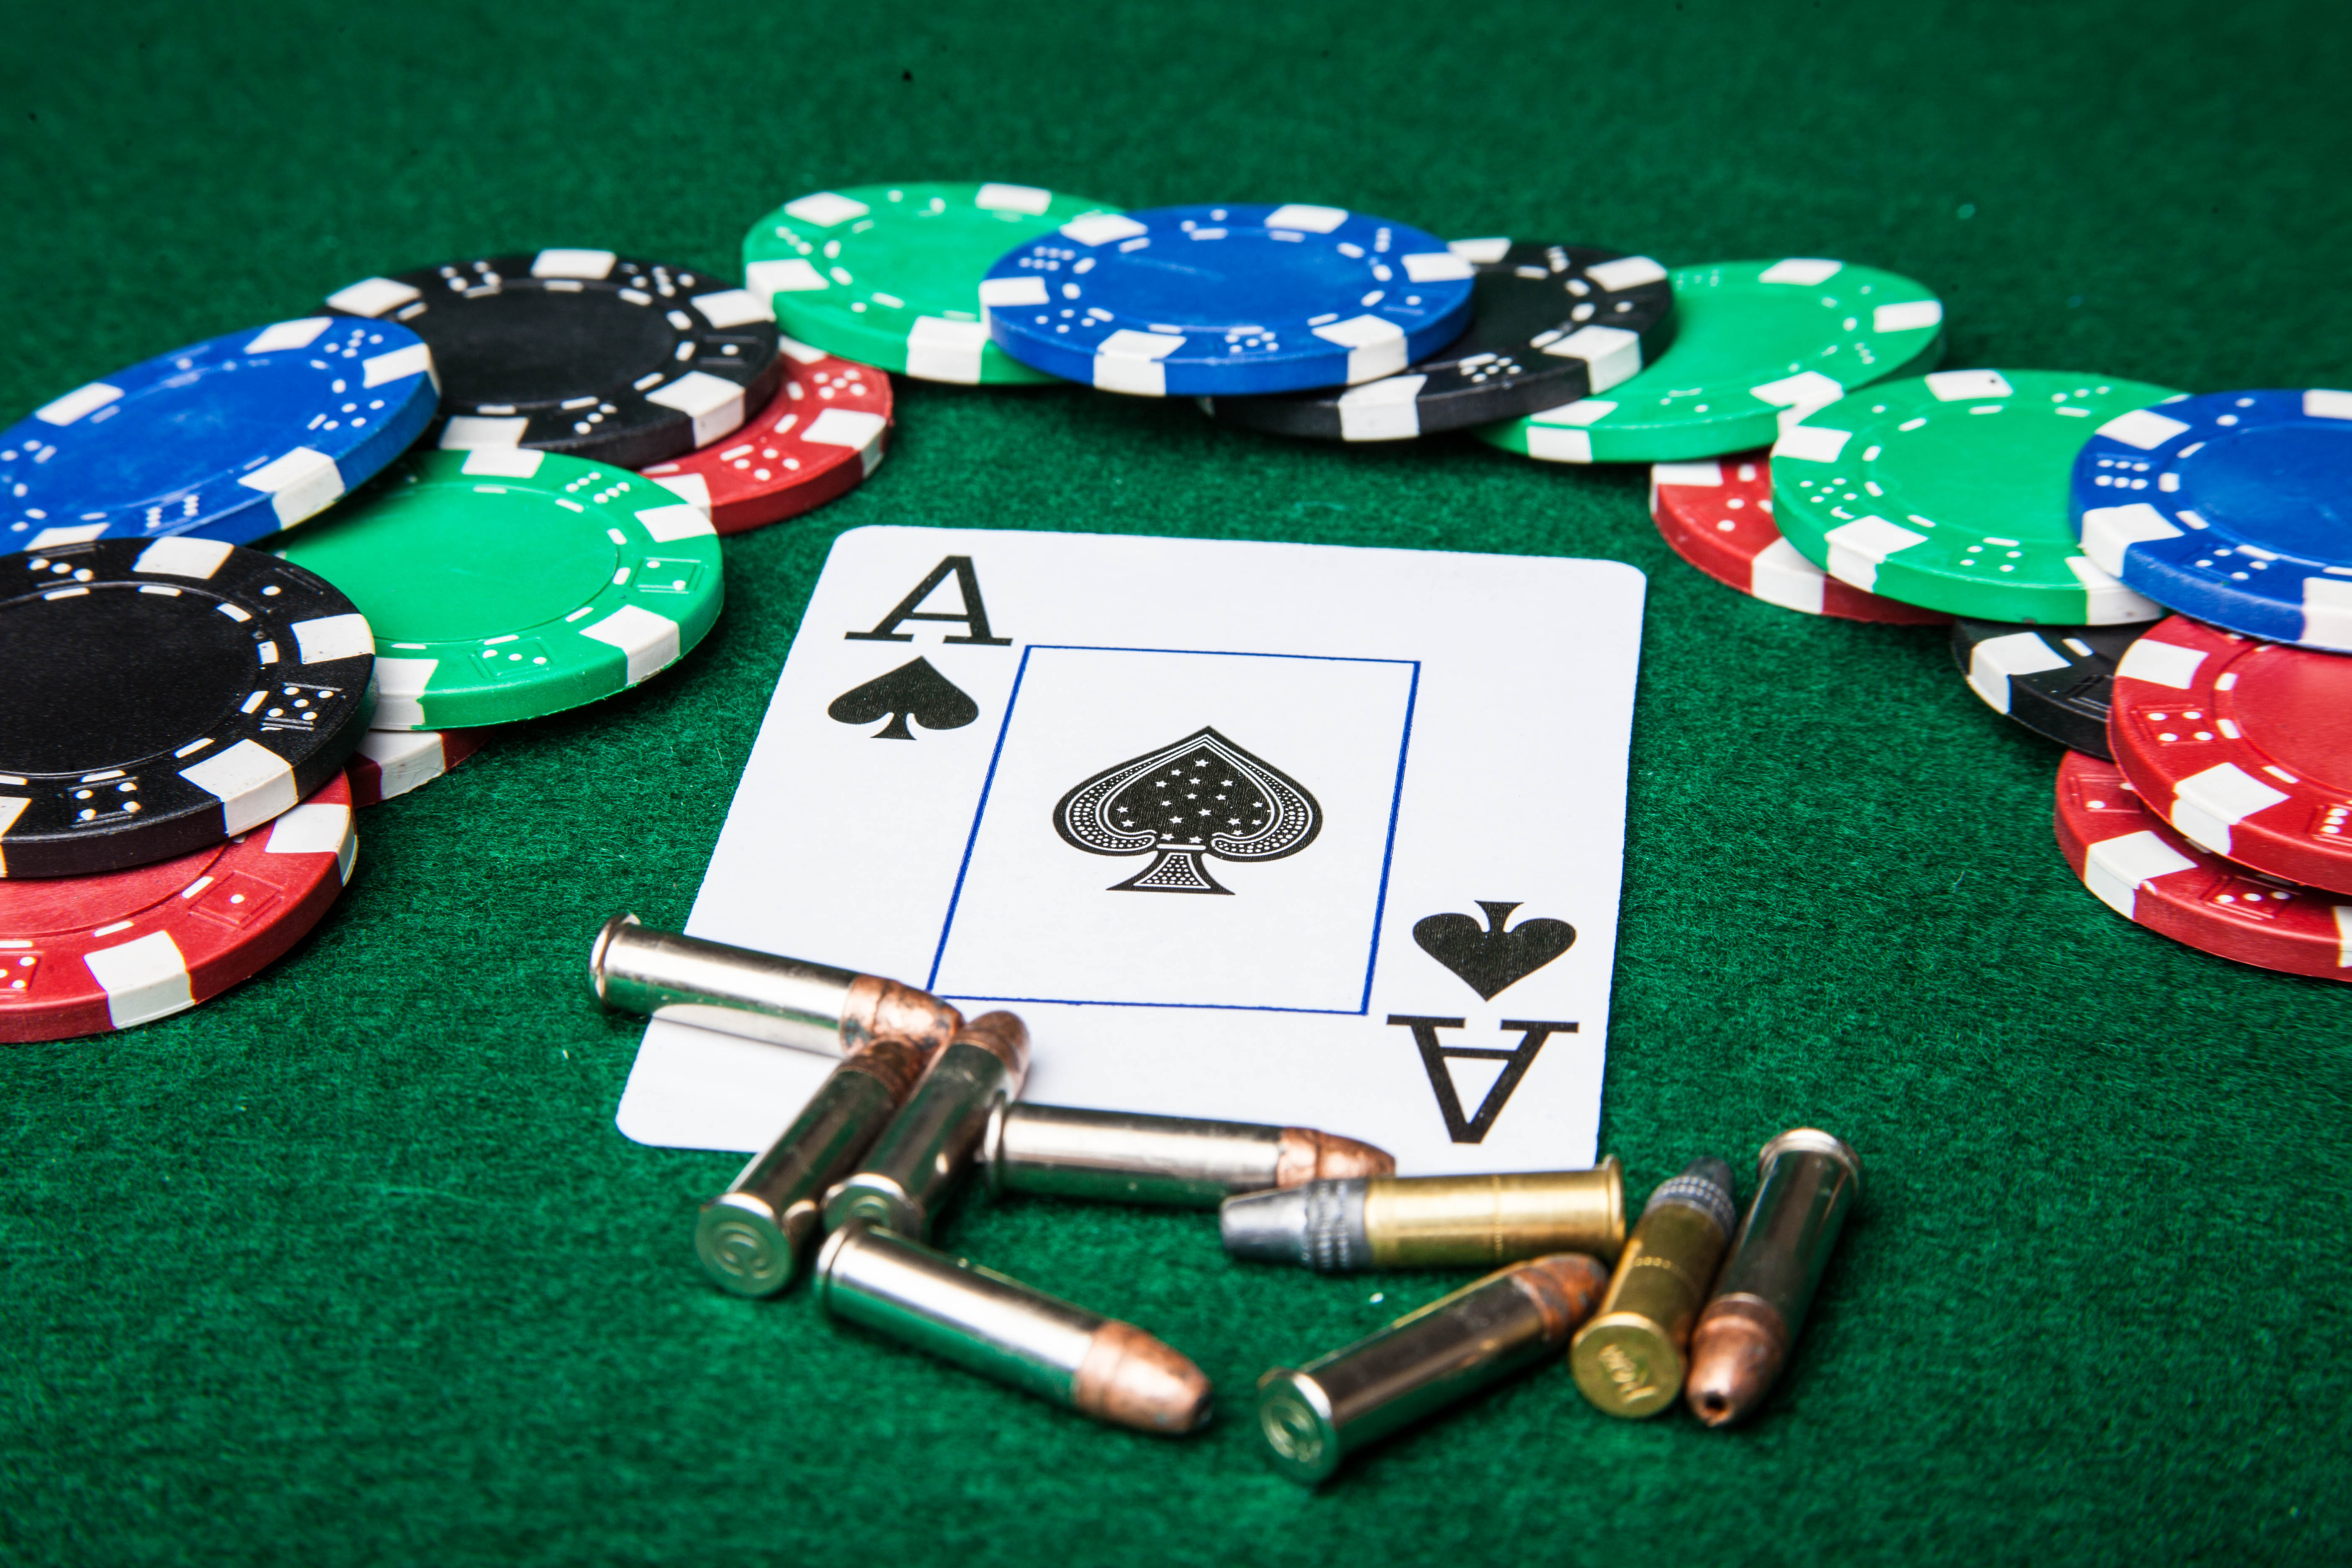 Gambling with bullets, Ace, Gambling, Threat, Table, HQ Photo